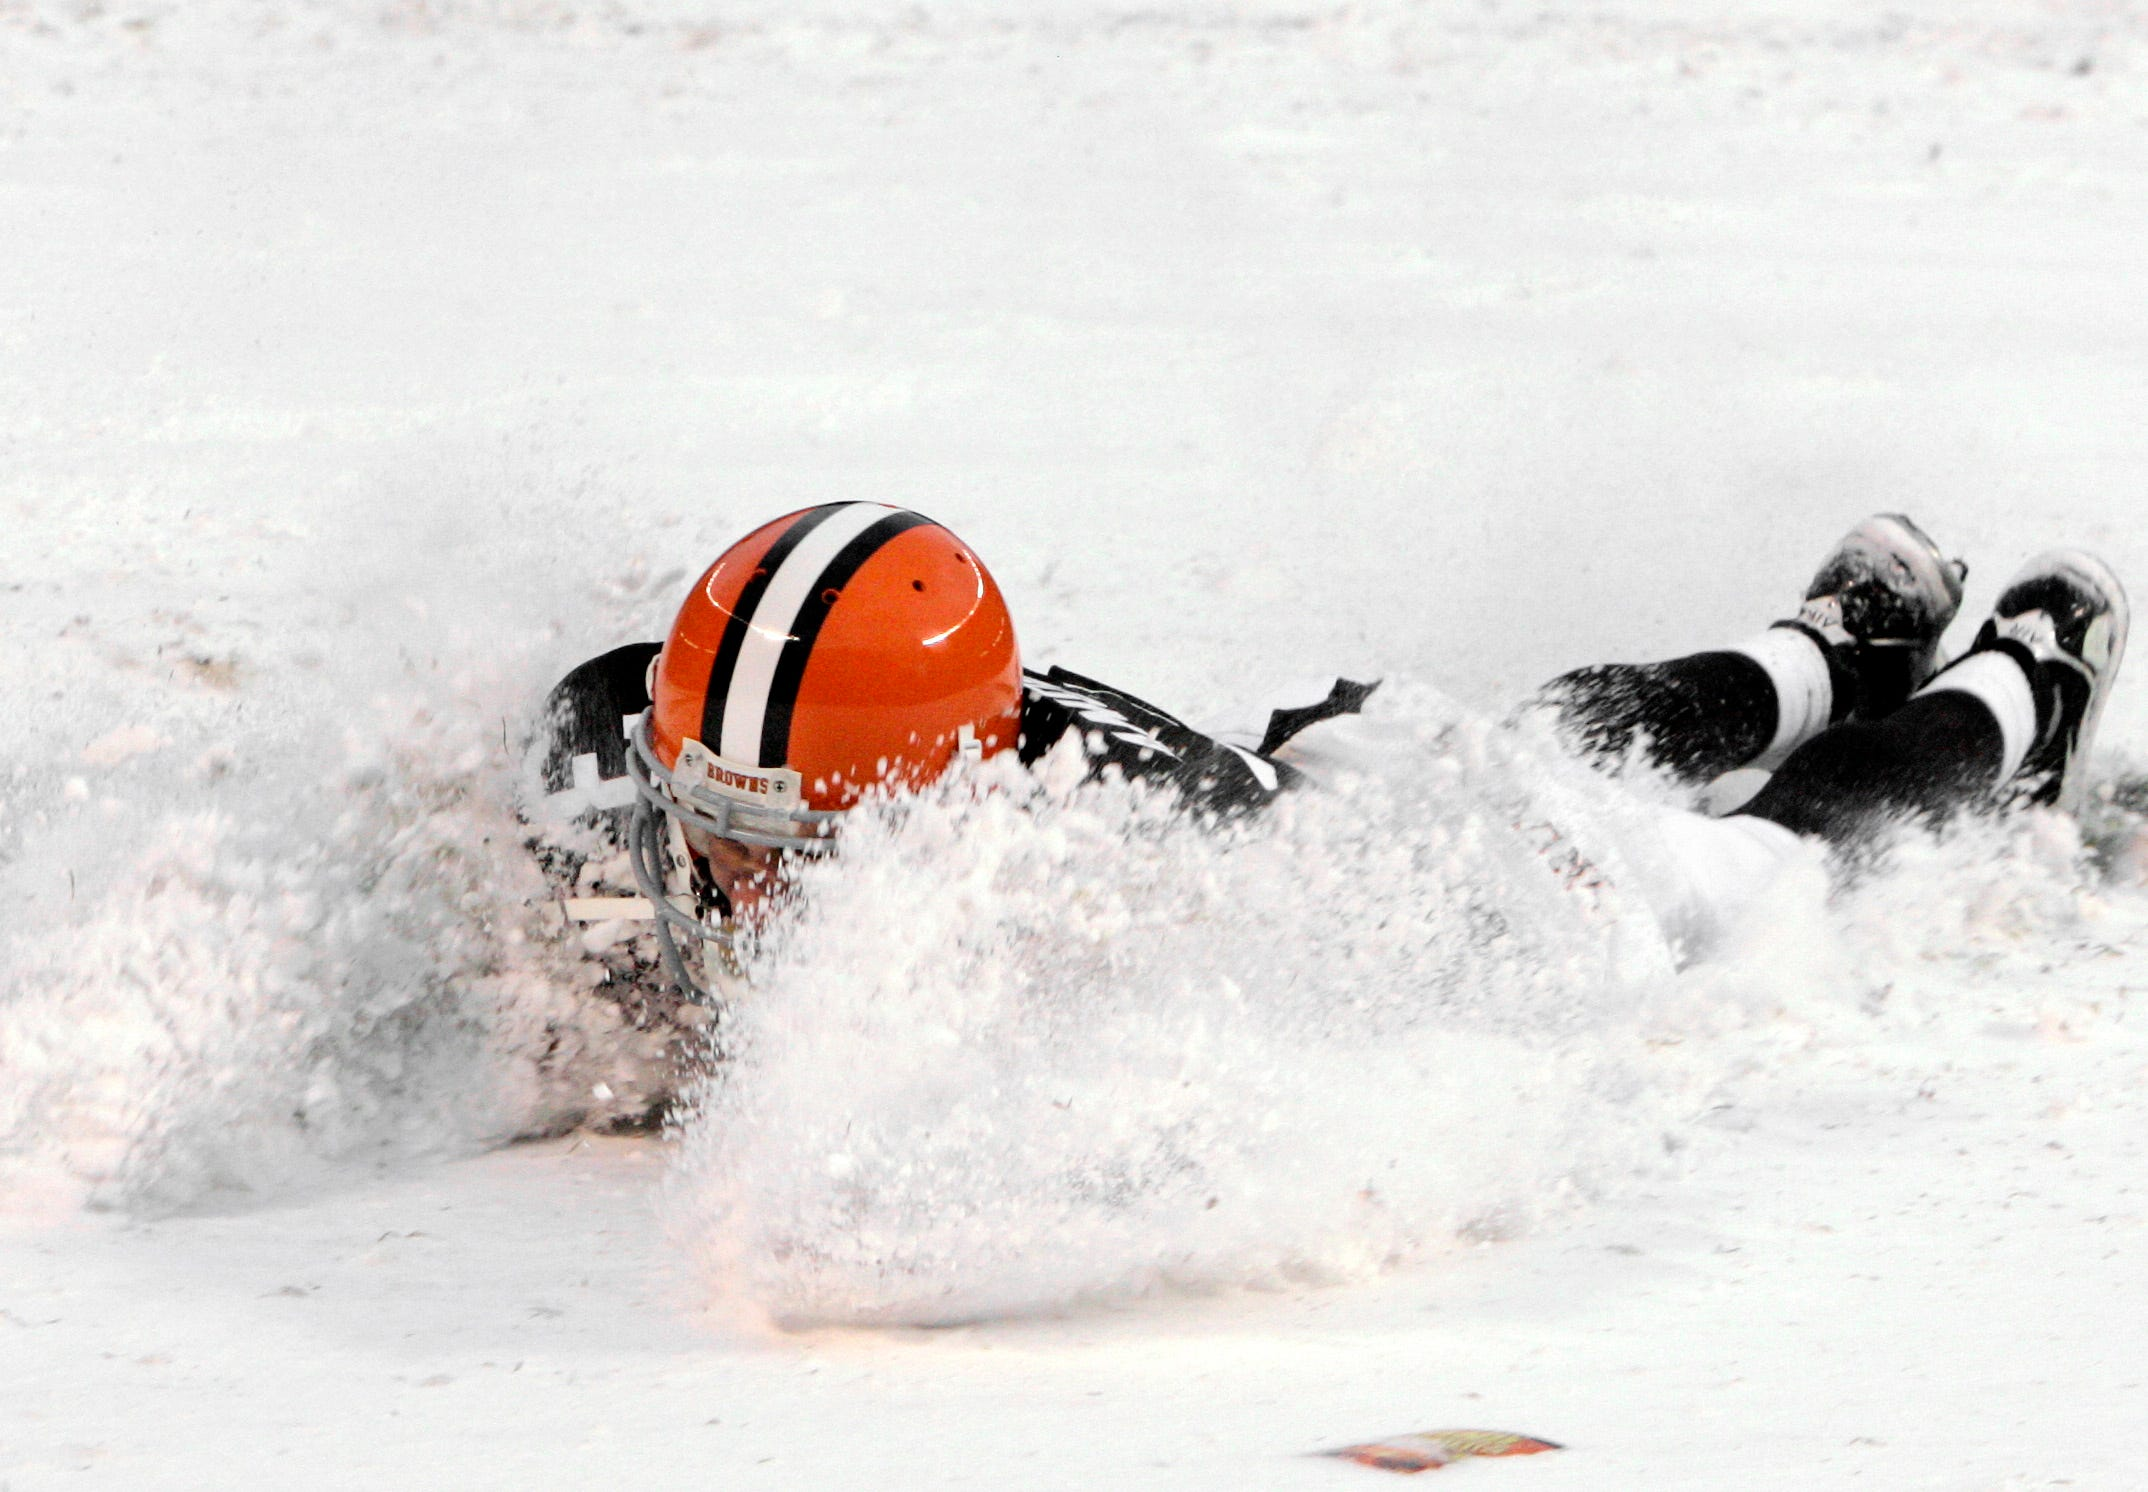 10 best snow games in sports history